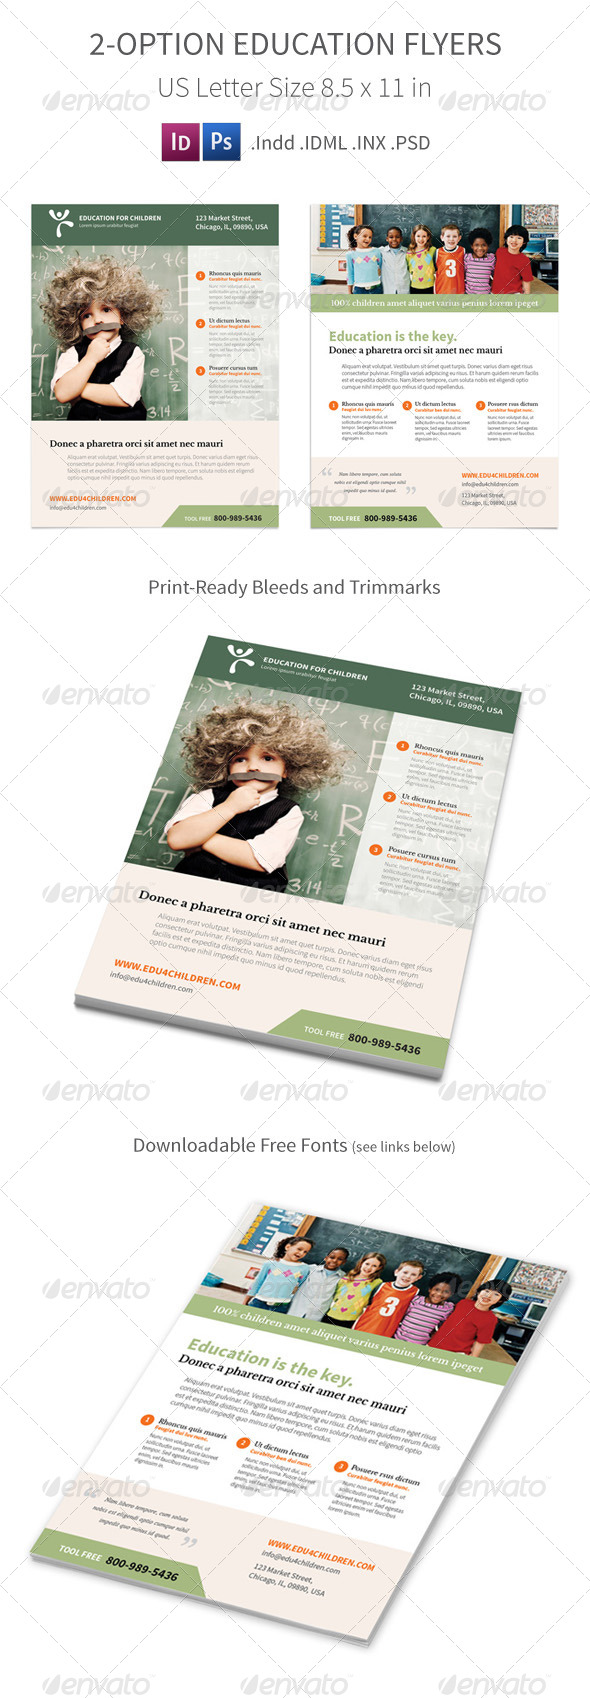 GraphicRiver Education Flyers 2 Options 7846246